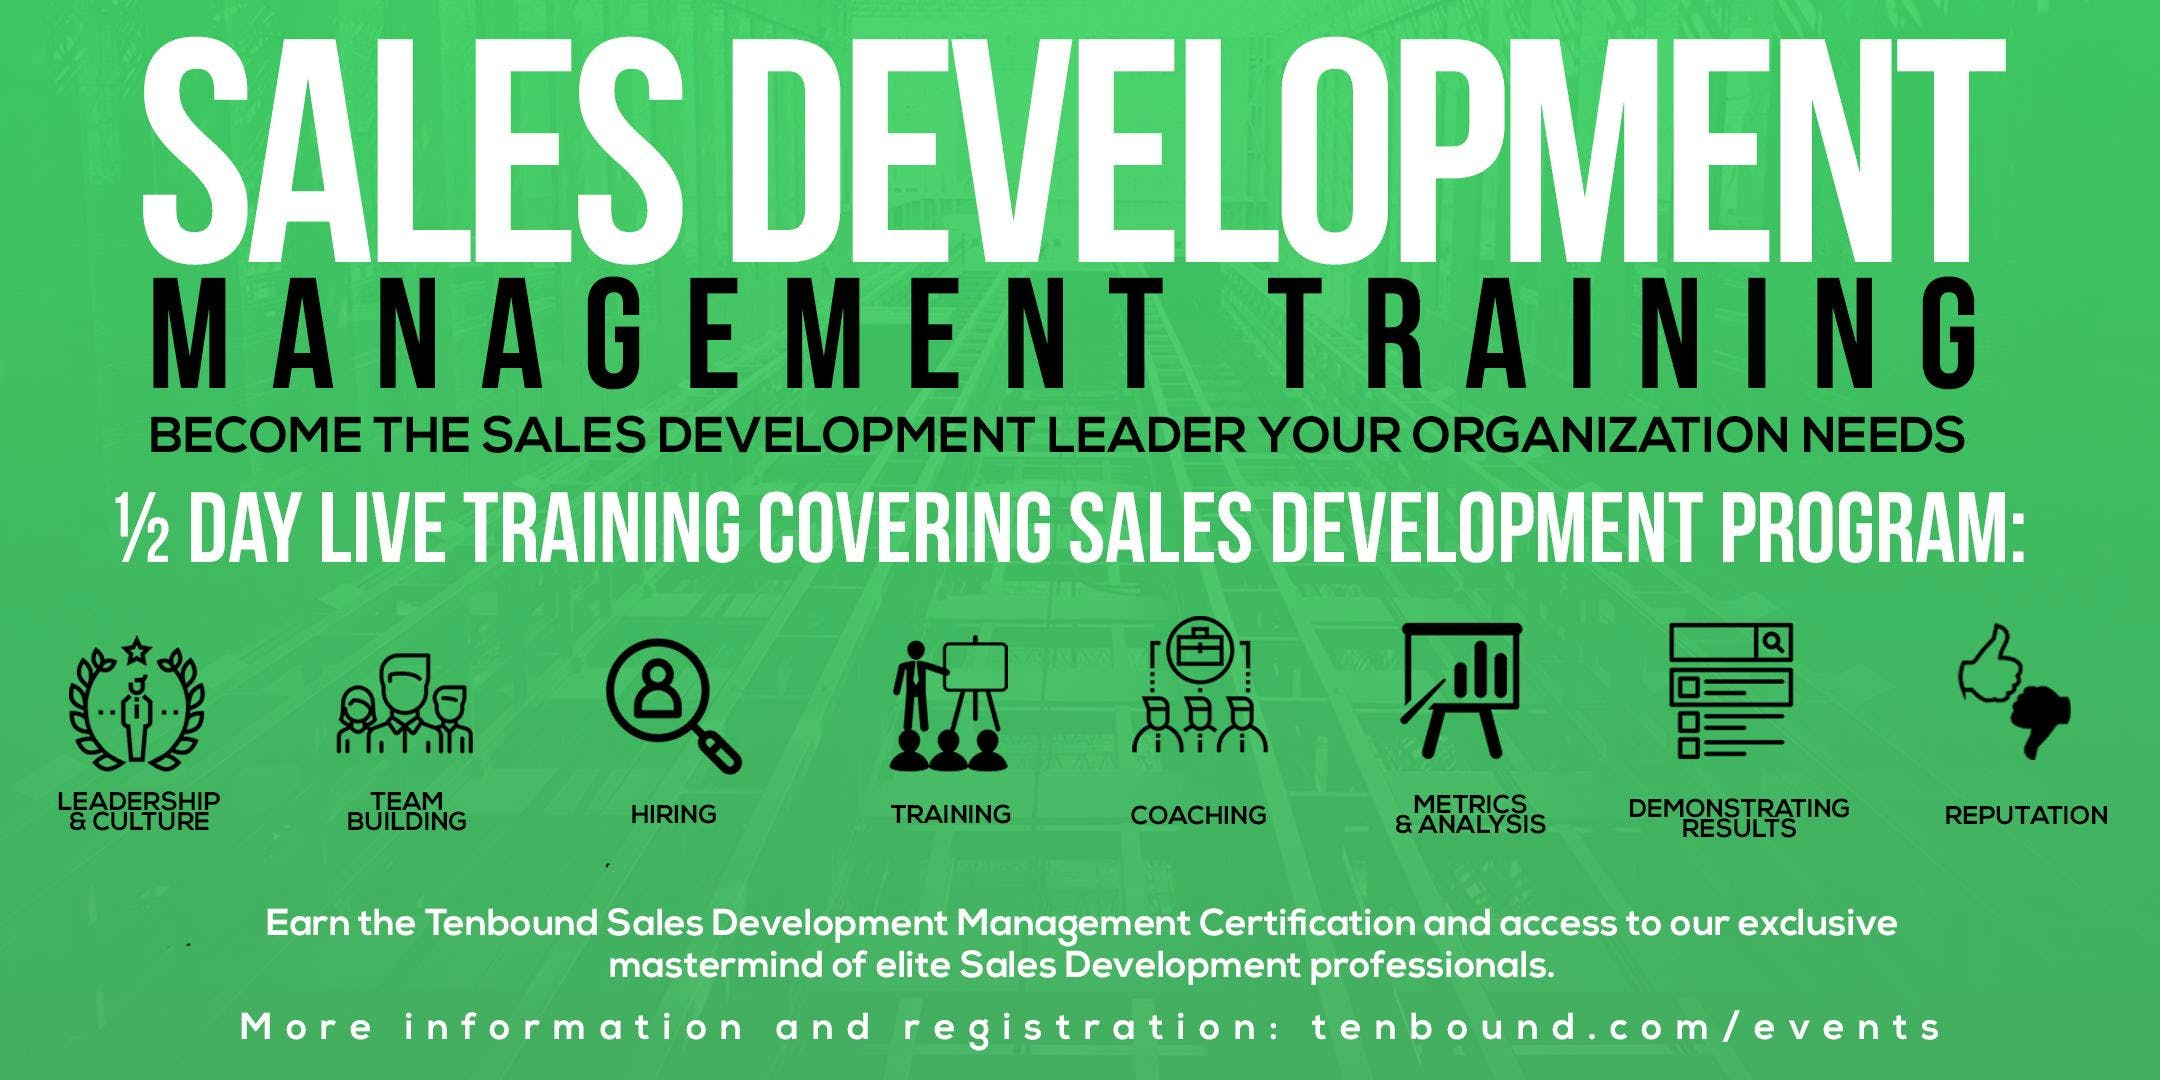 Sales Development Management Training Boston